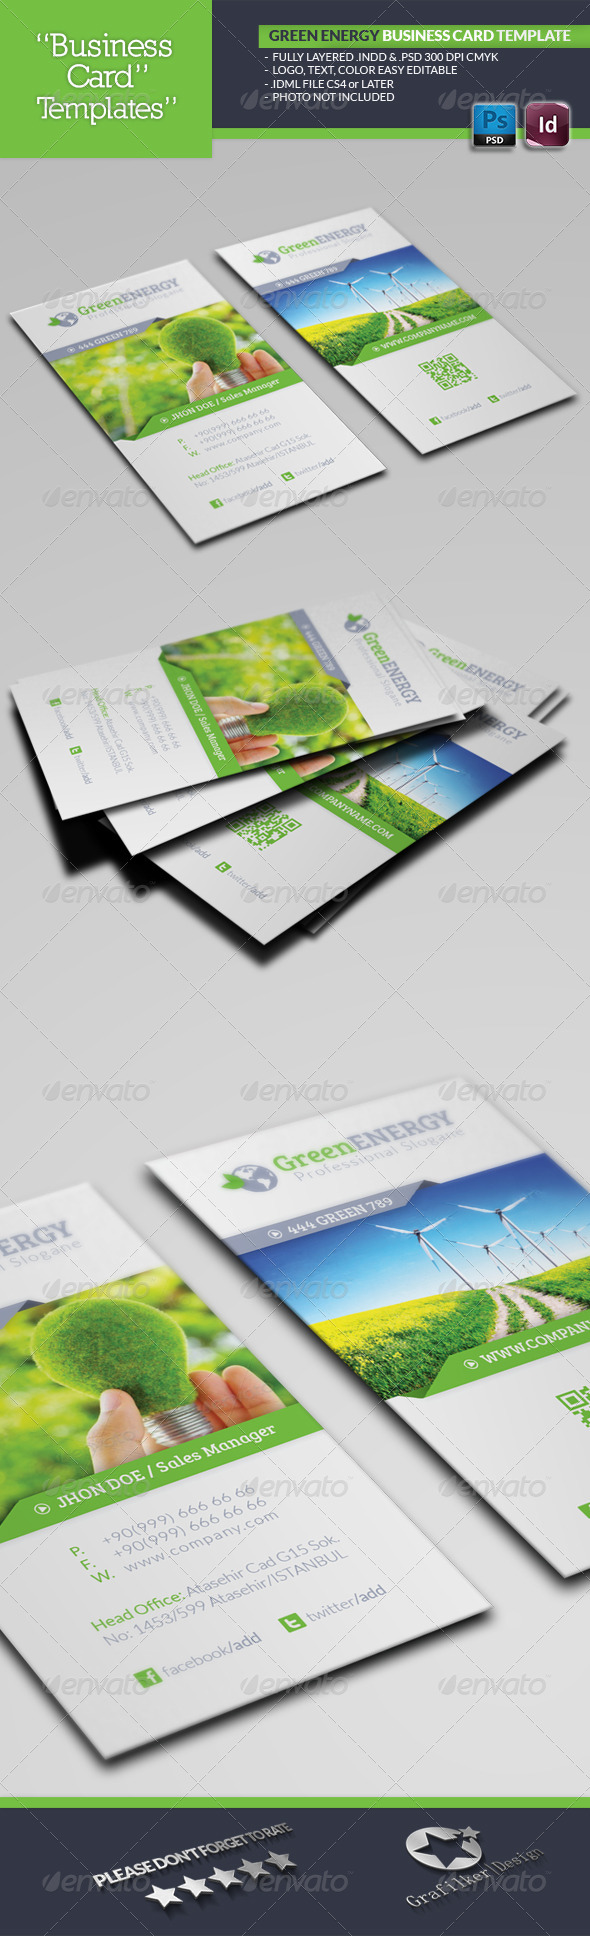 Green Energy Business Card Template - Business Cards Print Templates